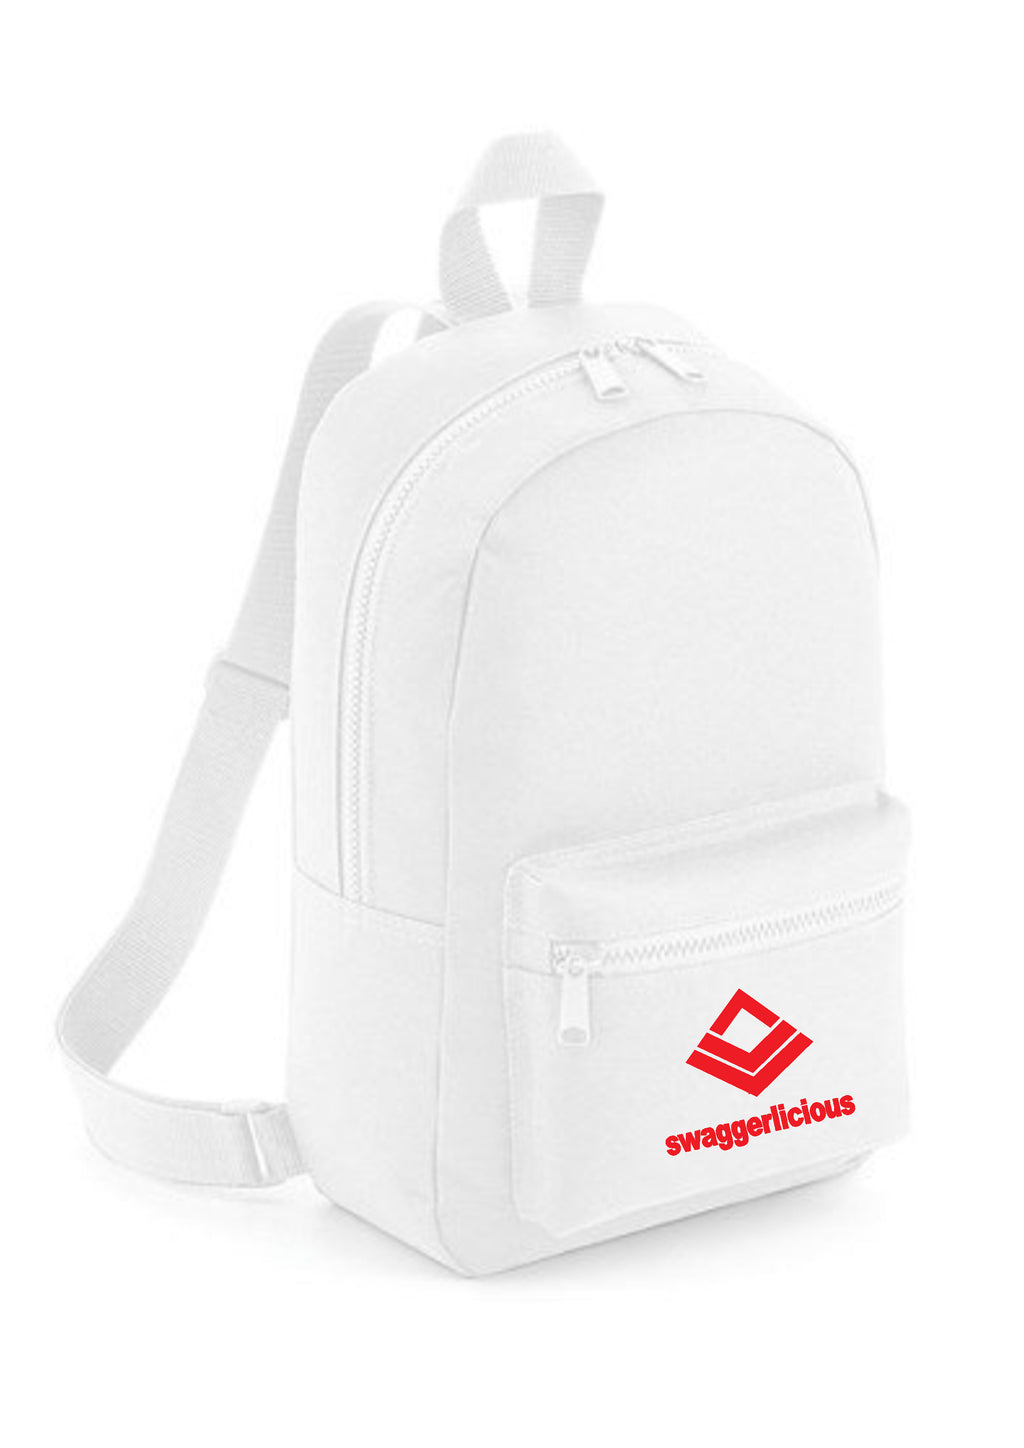 Swaggerlicious Classic White Mini Backpack with Red Logo - swaggerlicious-clothing.com